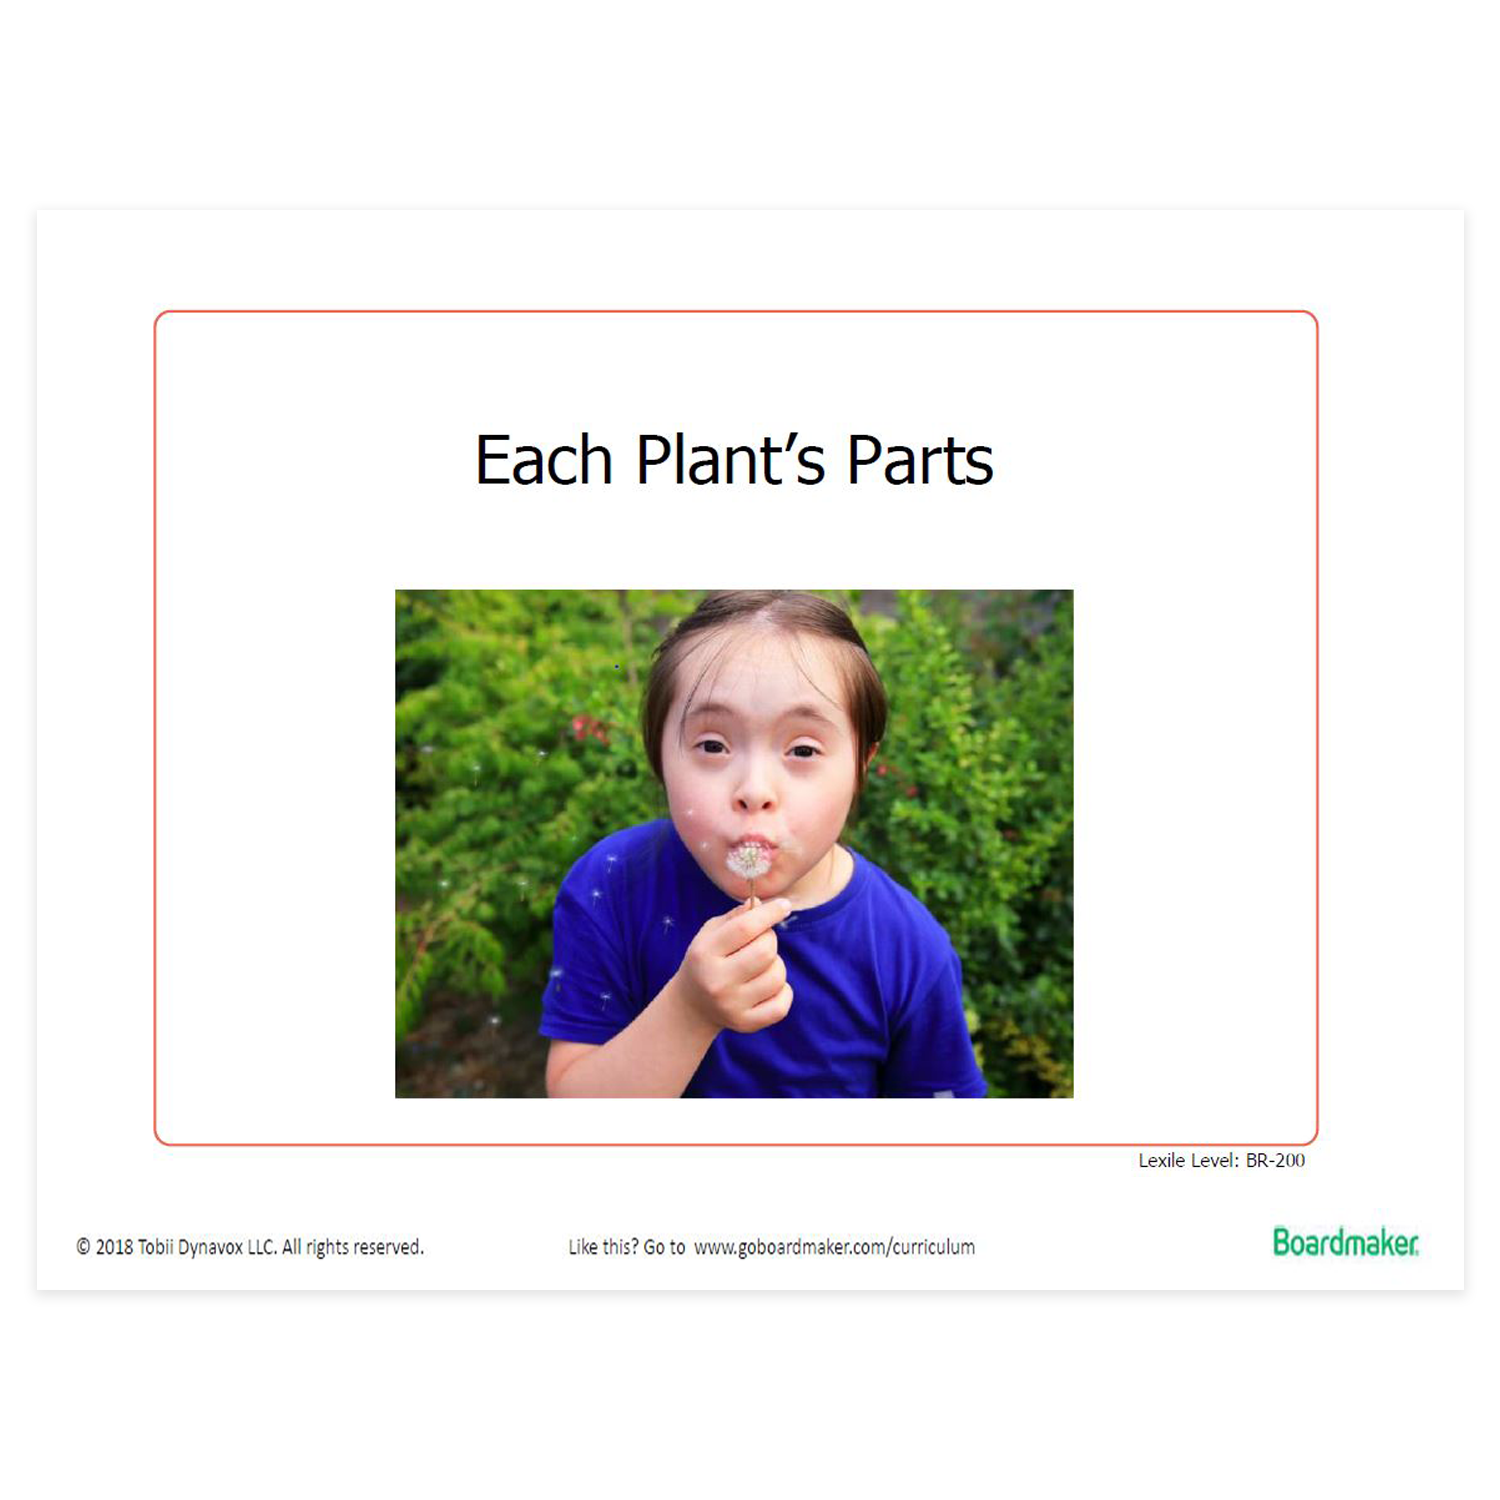 Example of Boardmaker - Each Plant's Parts